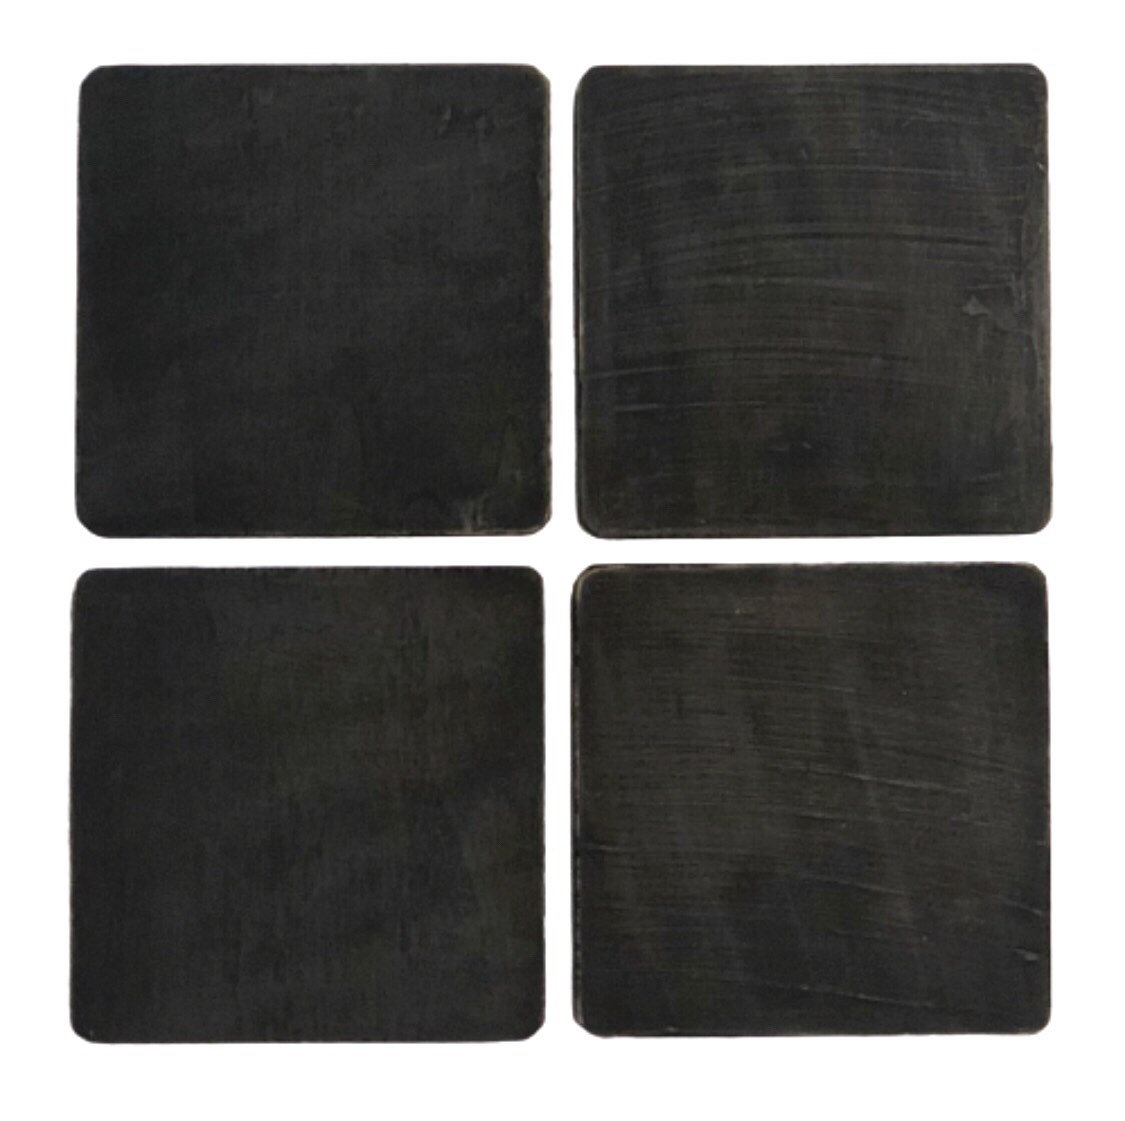 Black Painted Wood Coasters, Distressed, Set of 4